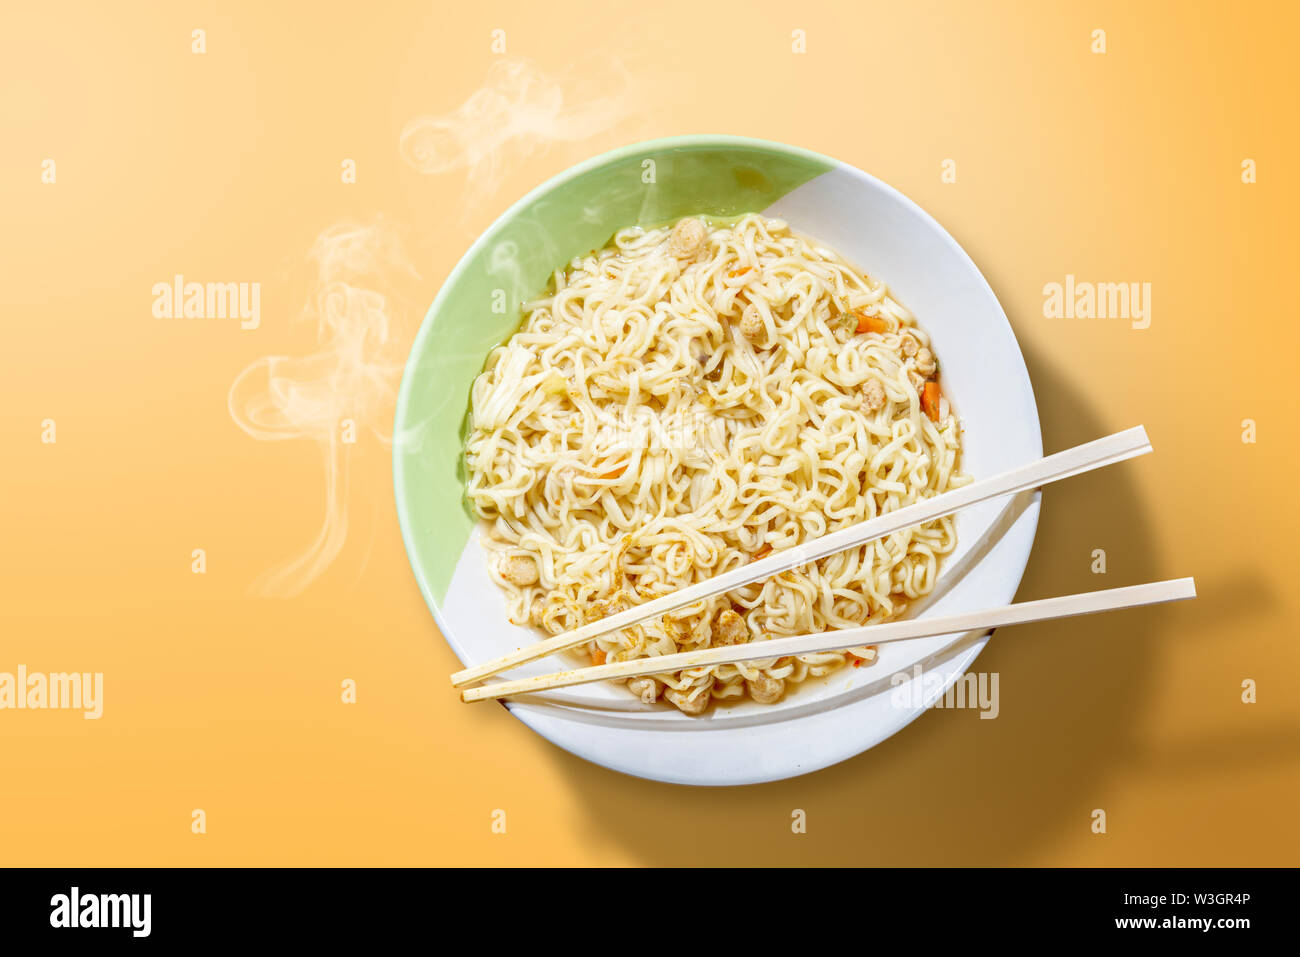 Noodles on the bowl with chopstick on yellow background - Stock Image